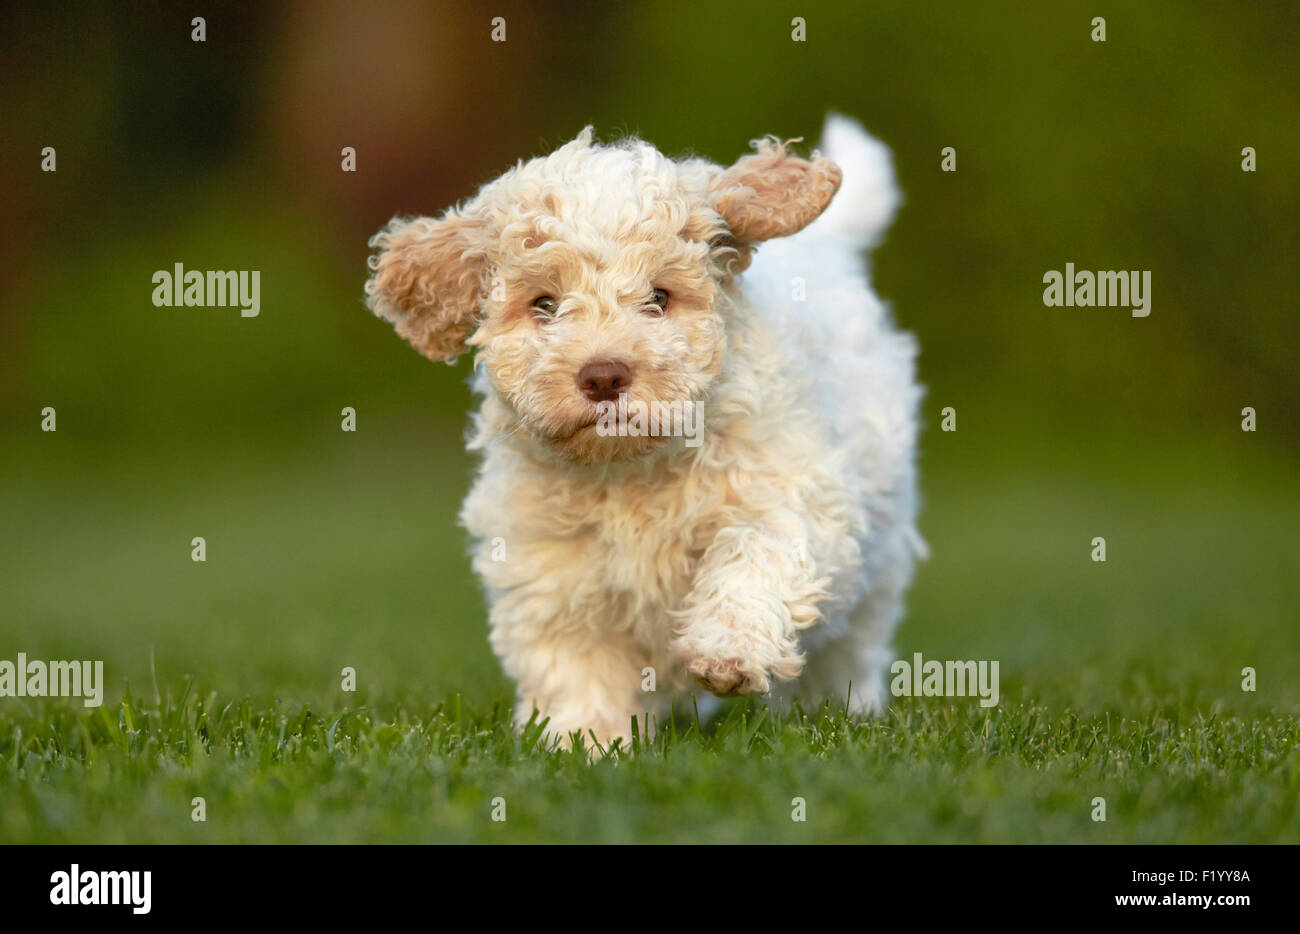 lagotto romagnolo puppy running lawn germany stock photo 87280602